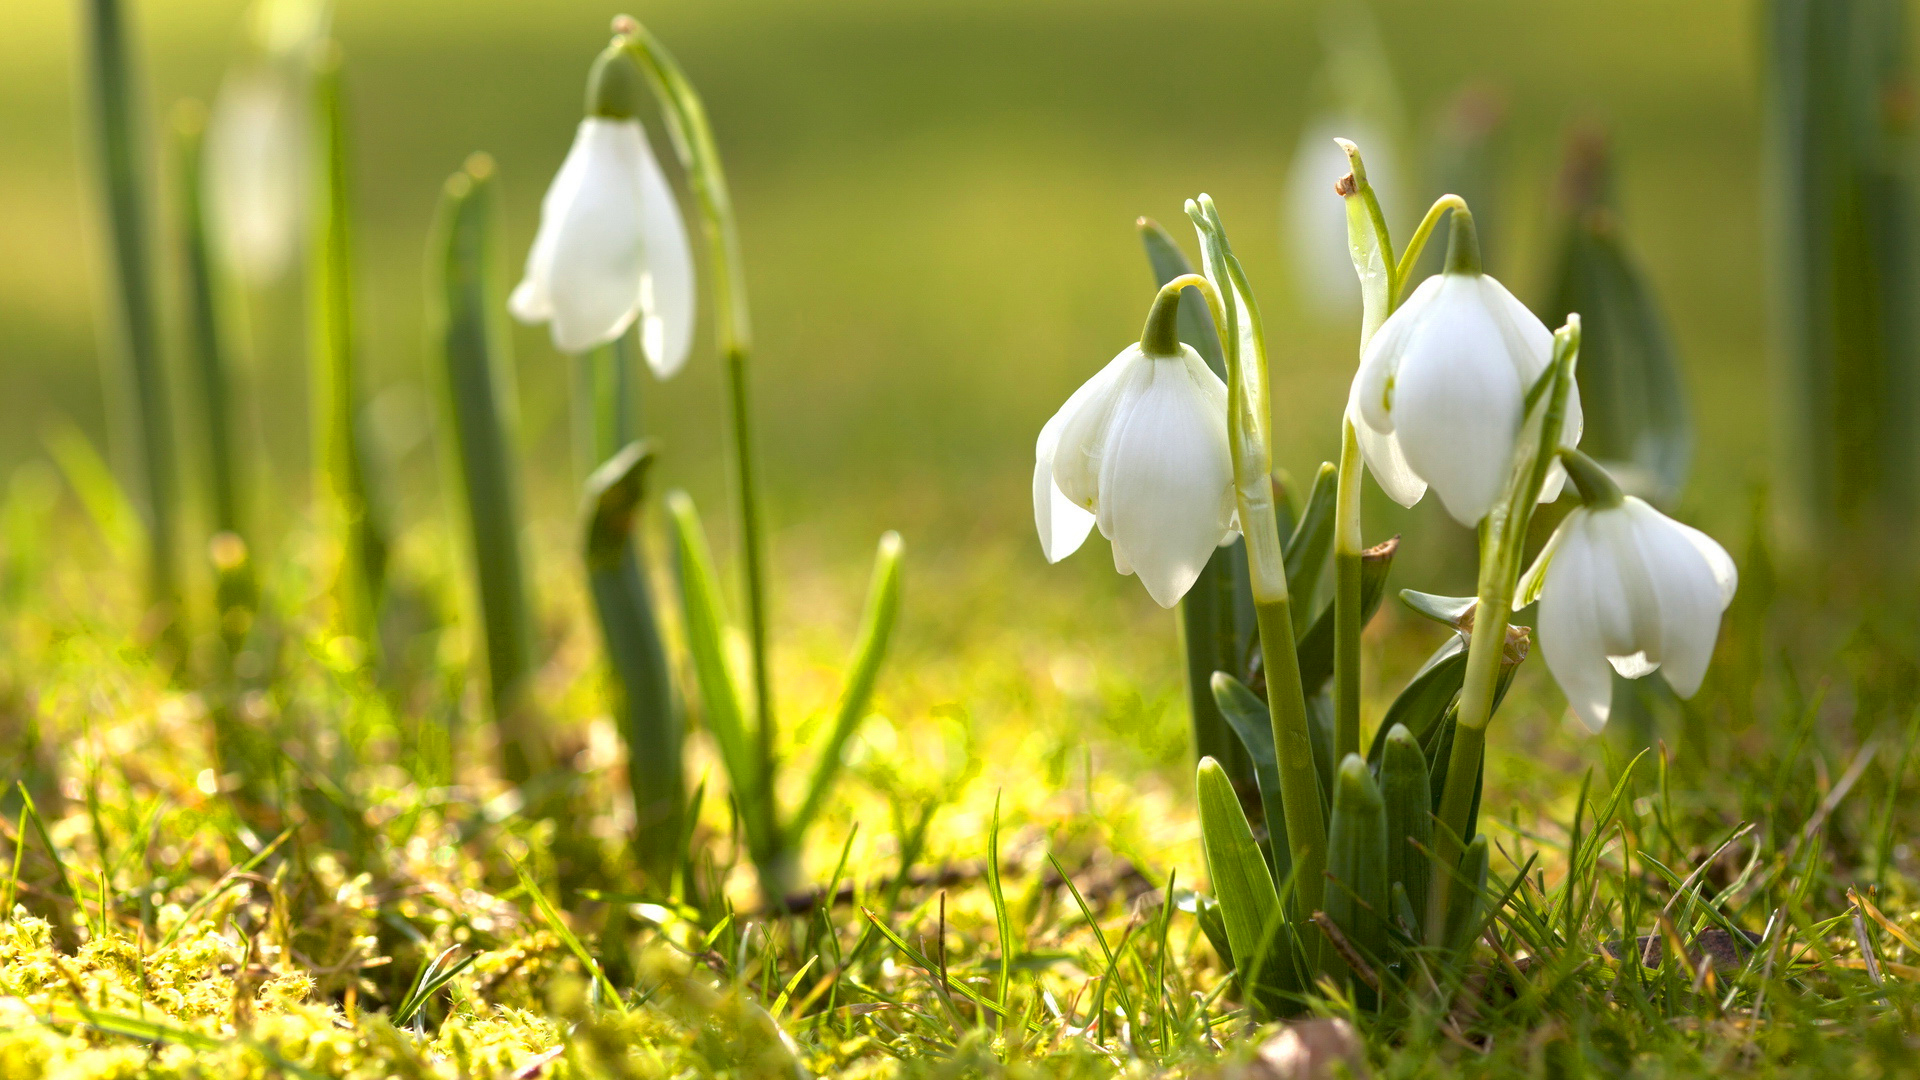 Snowdrops Spring Flowers wallpaper